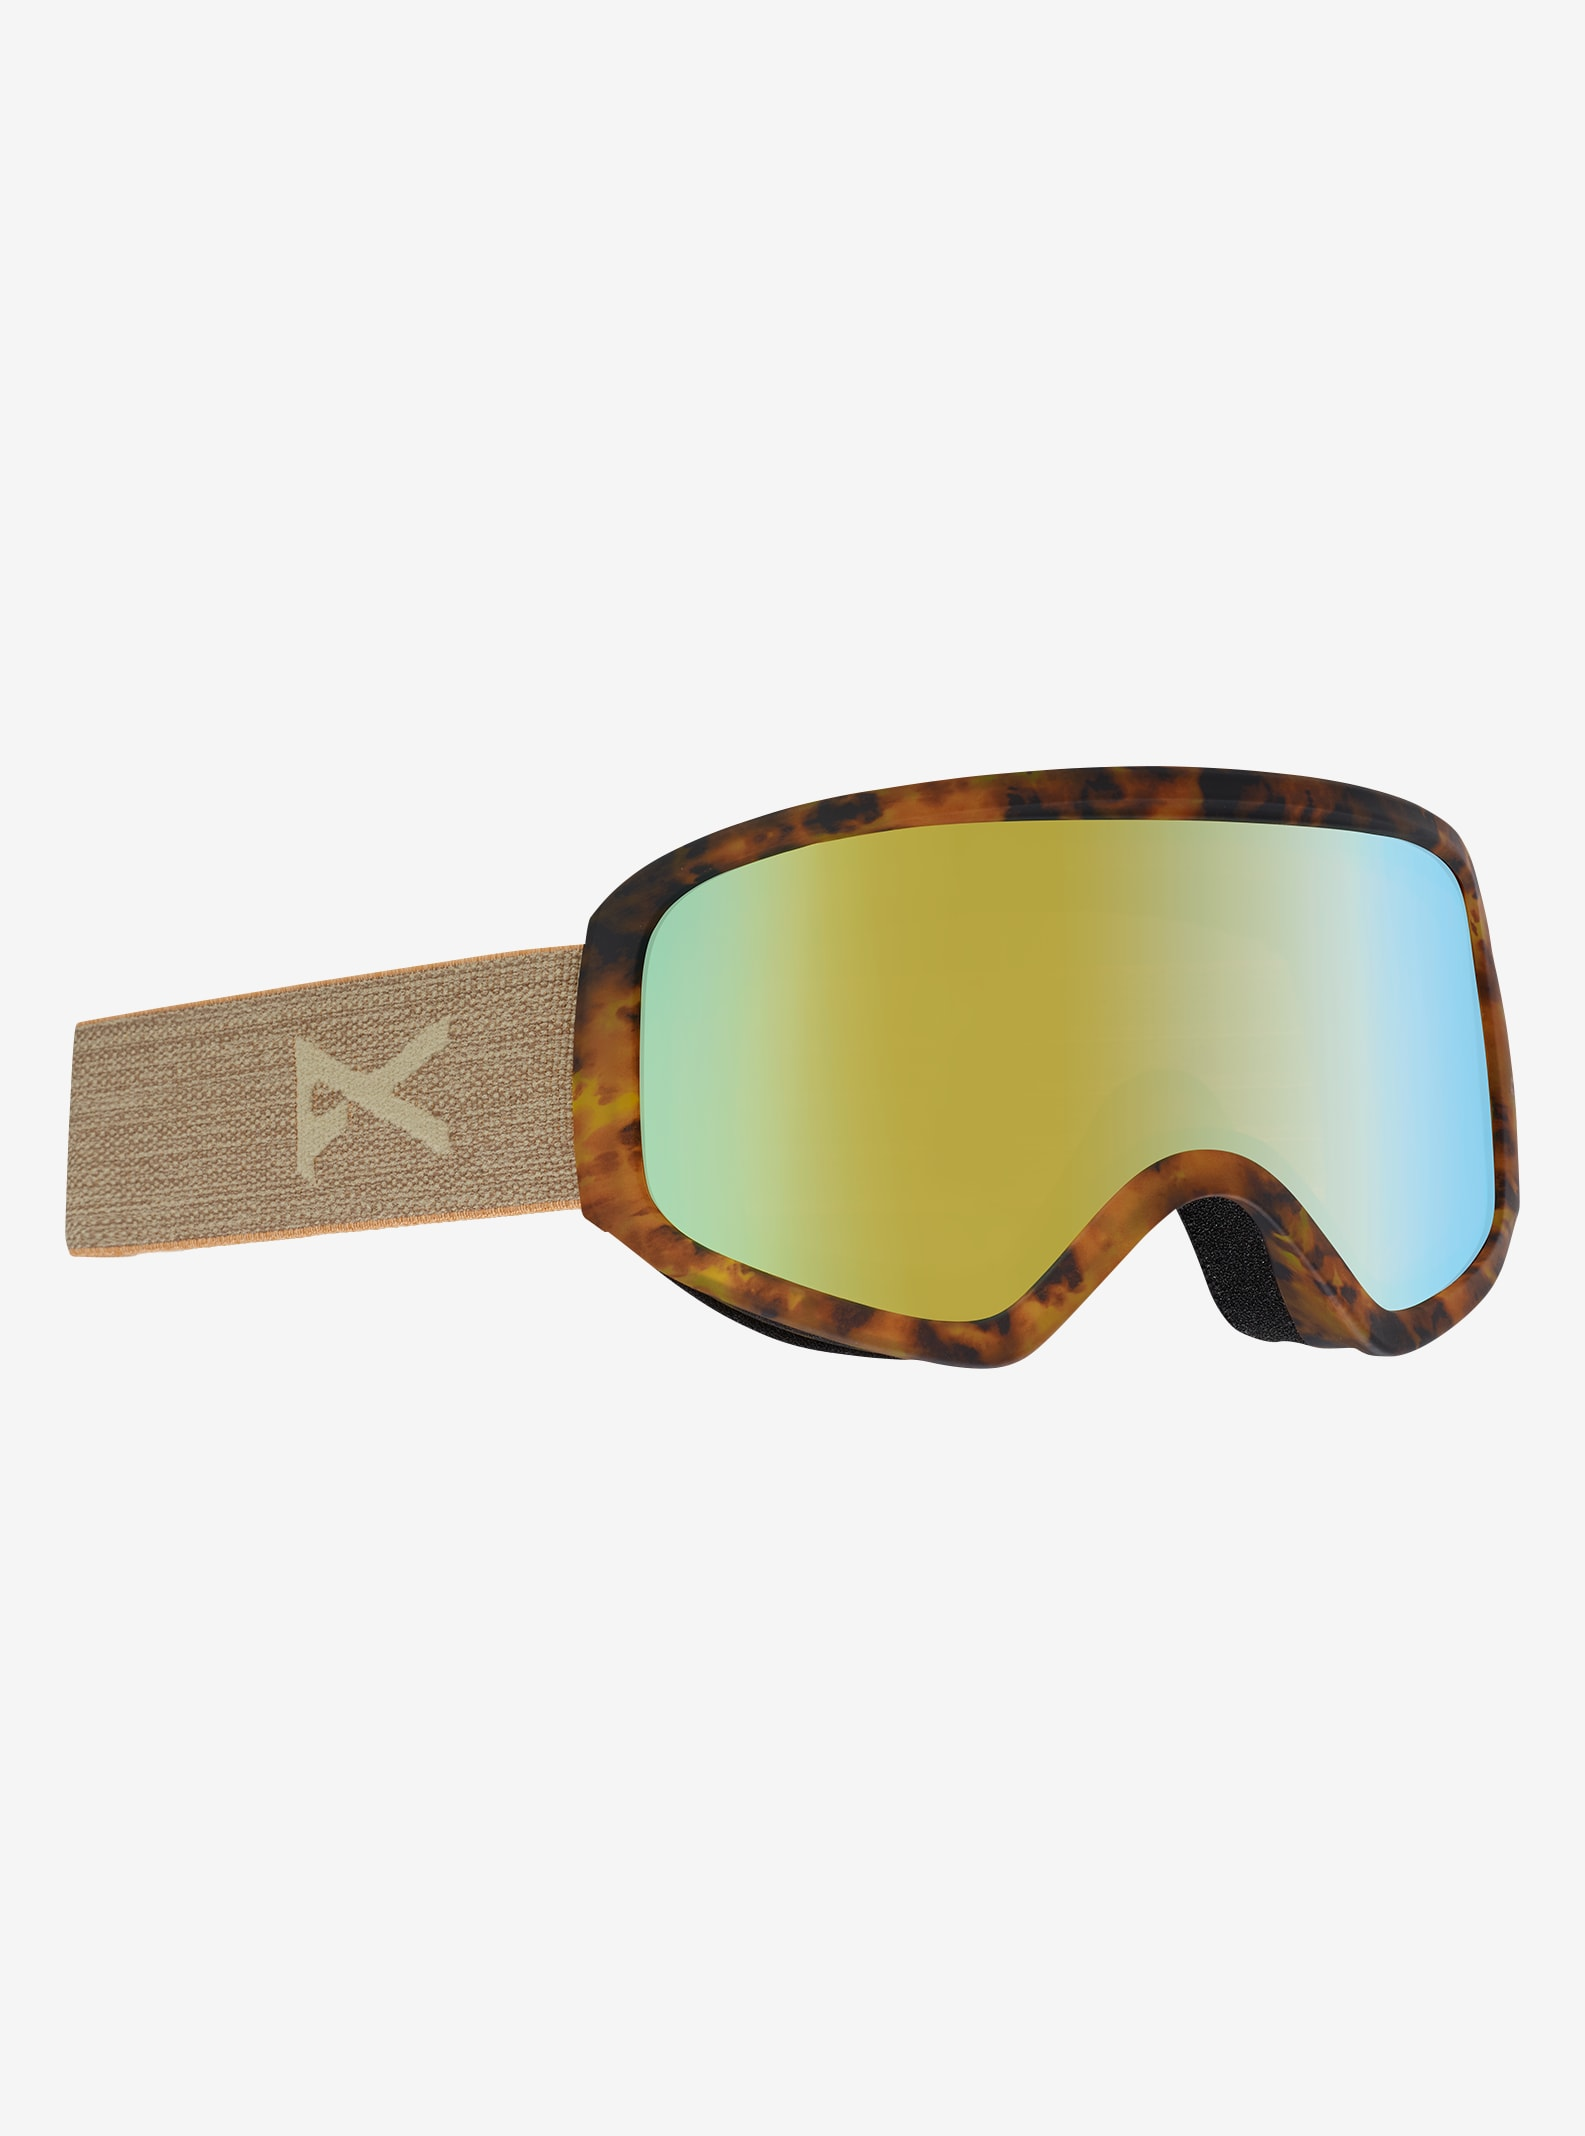 Women's Anon Insight Goggle shown in Frame: Tort, Lens: Gold Chrome